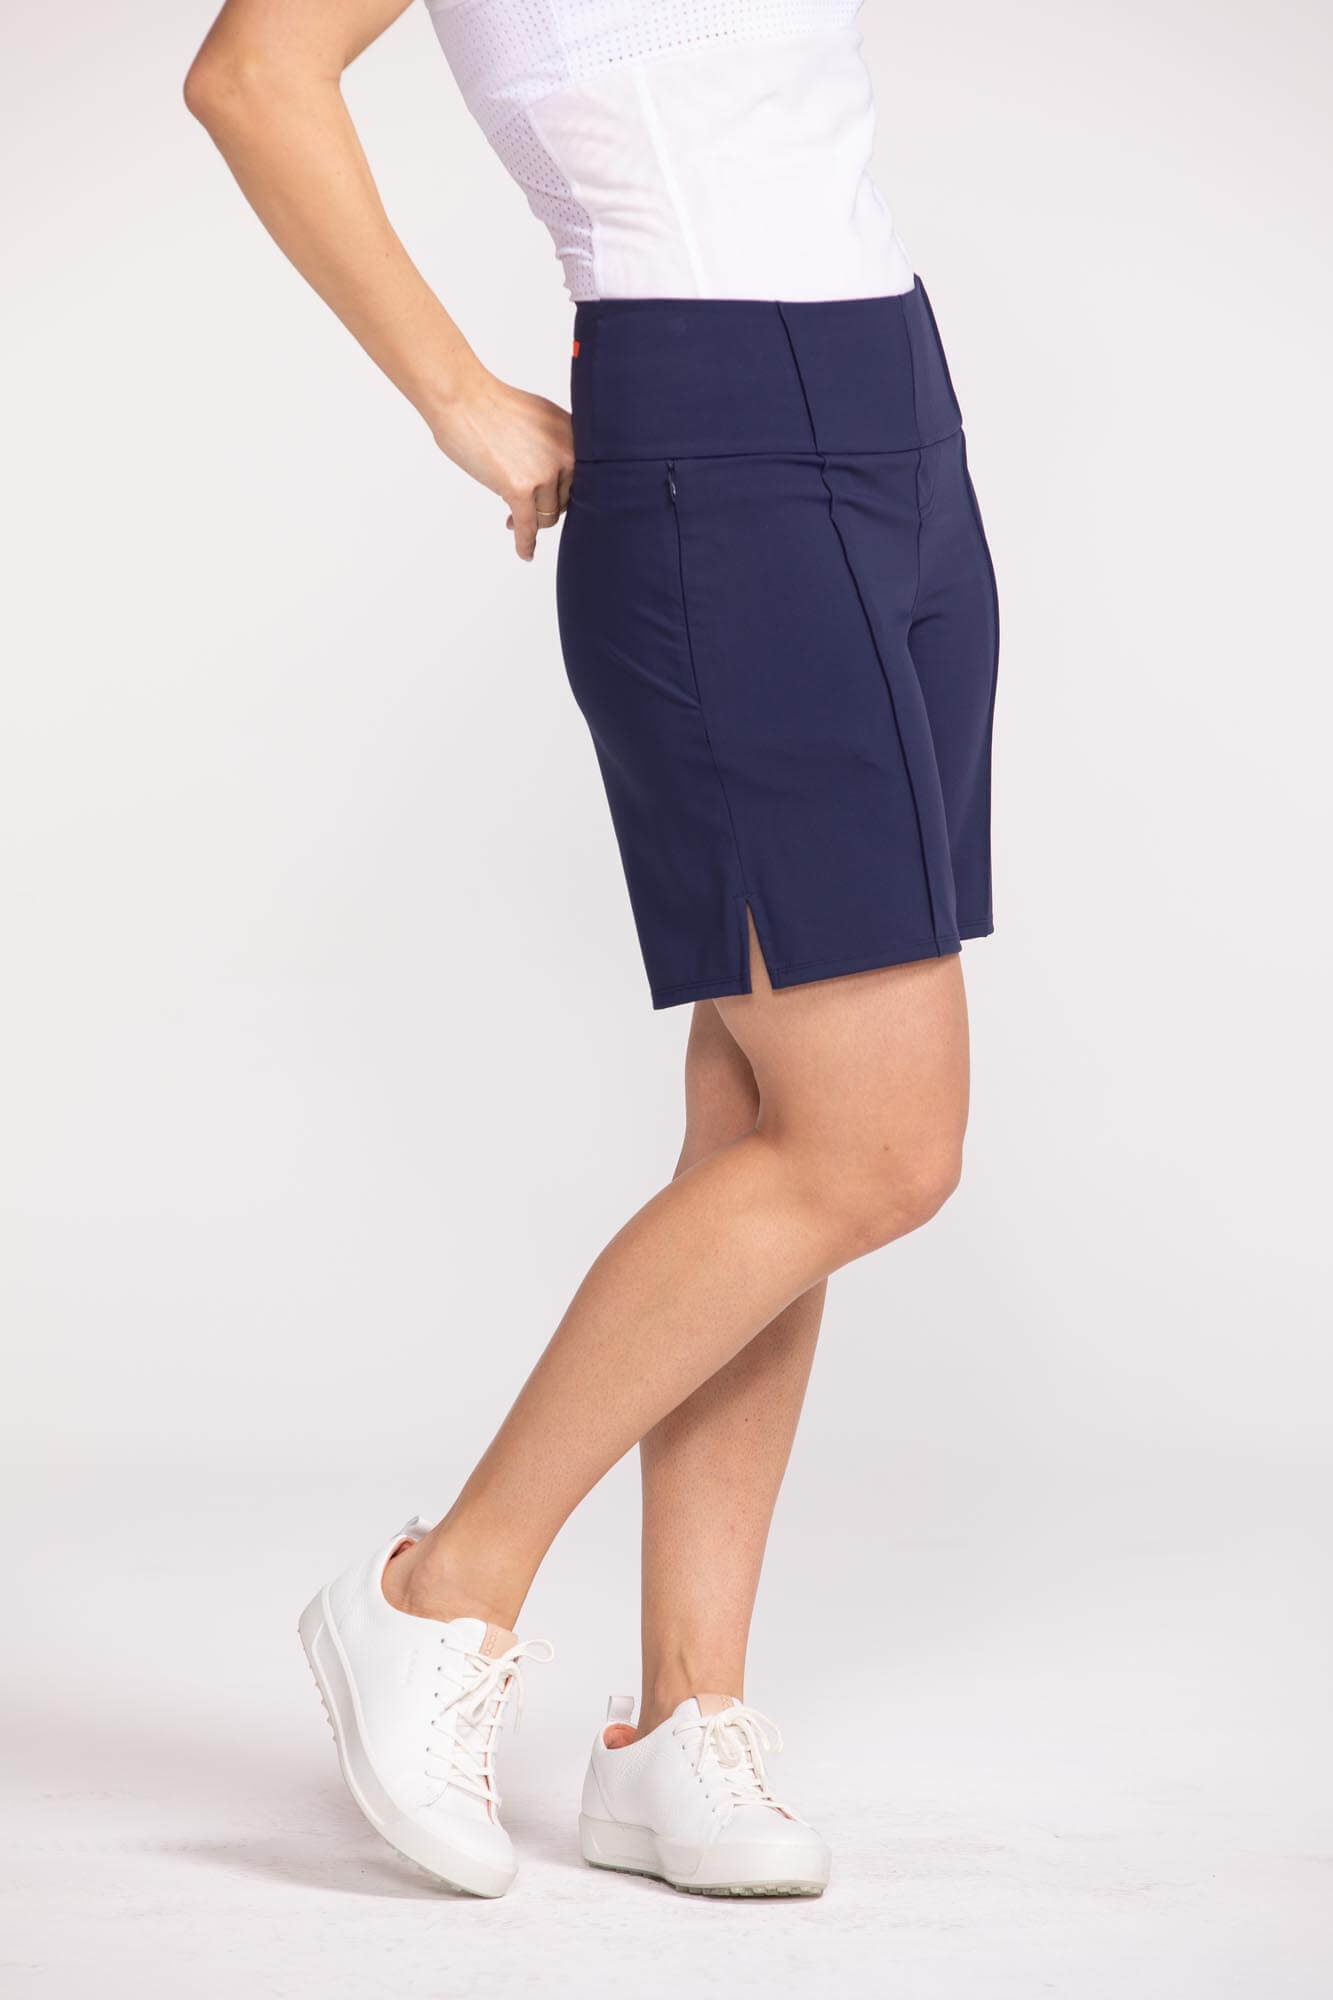 Side view of woman wearing navy blue Tailored and Trim golf short